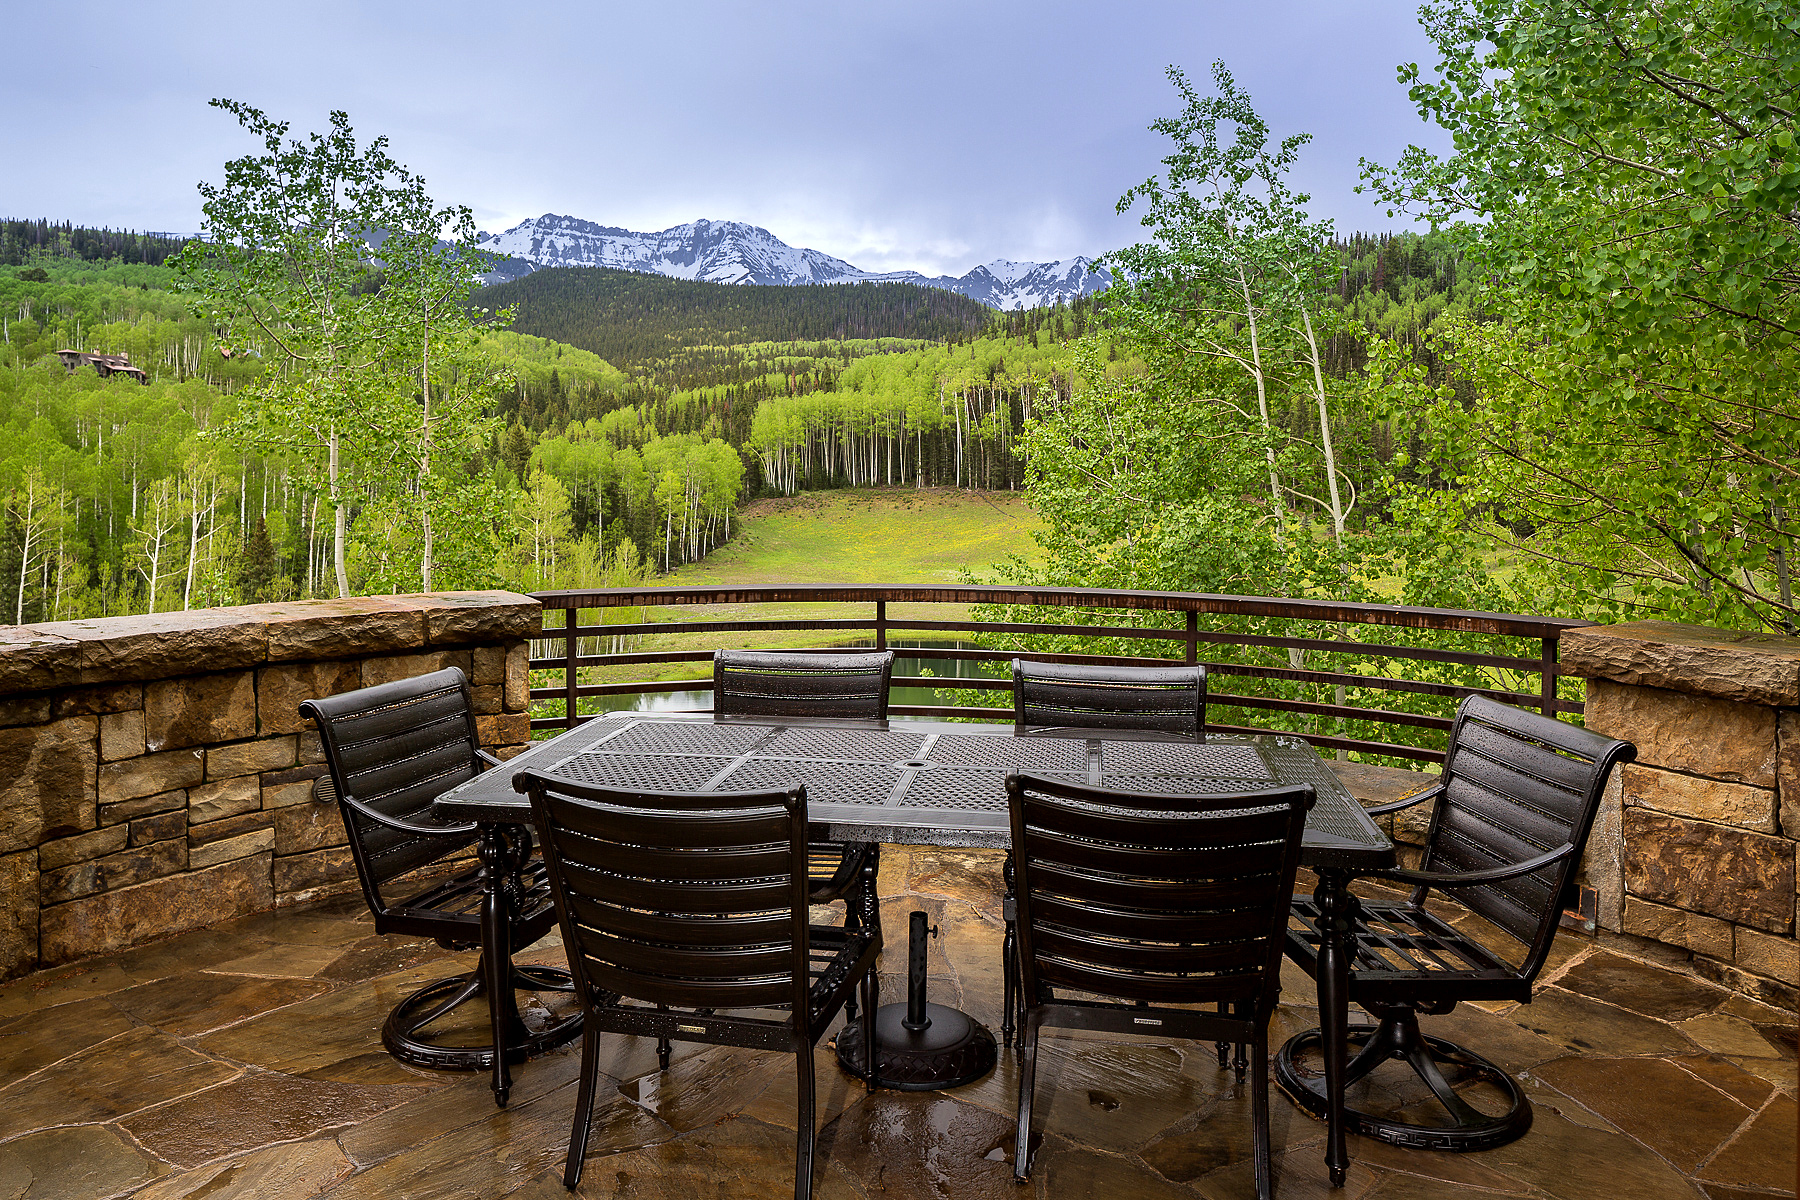 Casa Unifamiliar por un Venta en Turkey Creek Ranch 8210 Highway 145 Telluride, Colorado, 81435 Estados Unidos